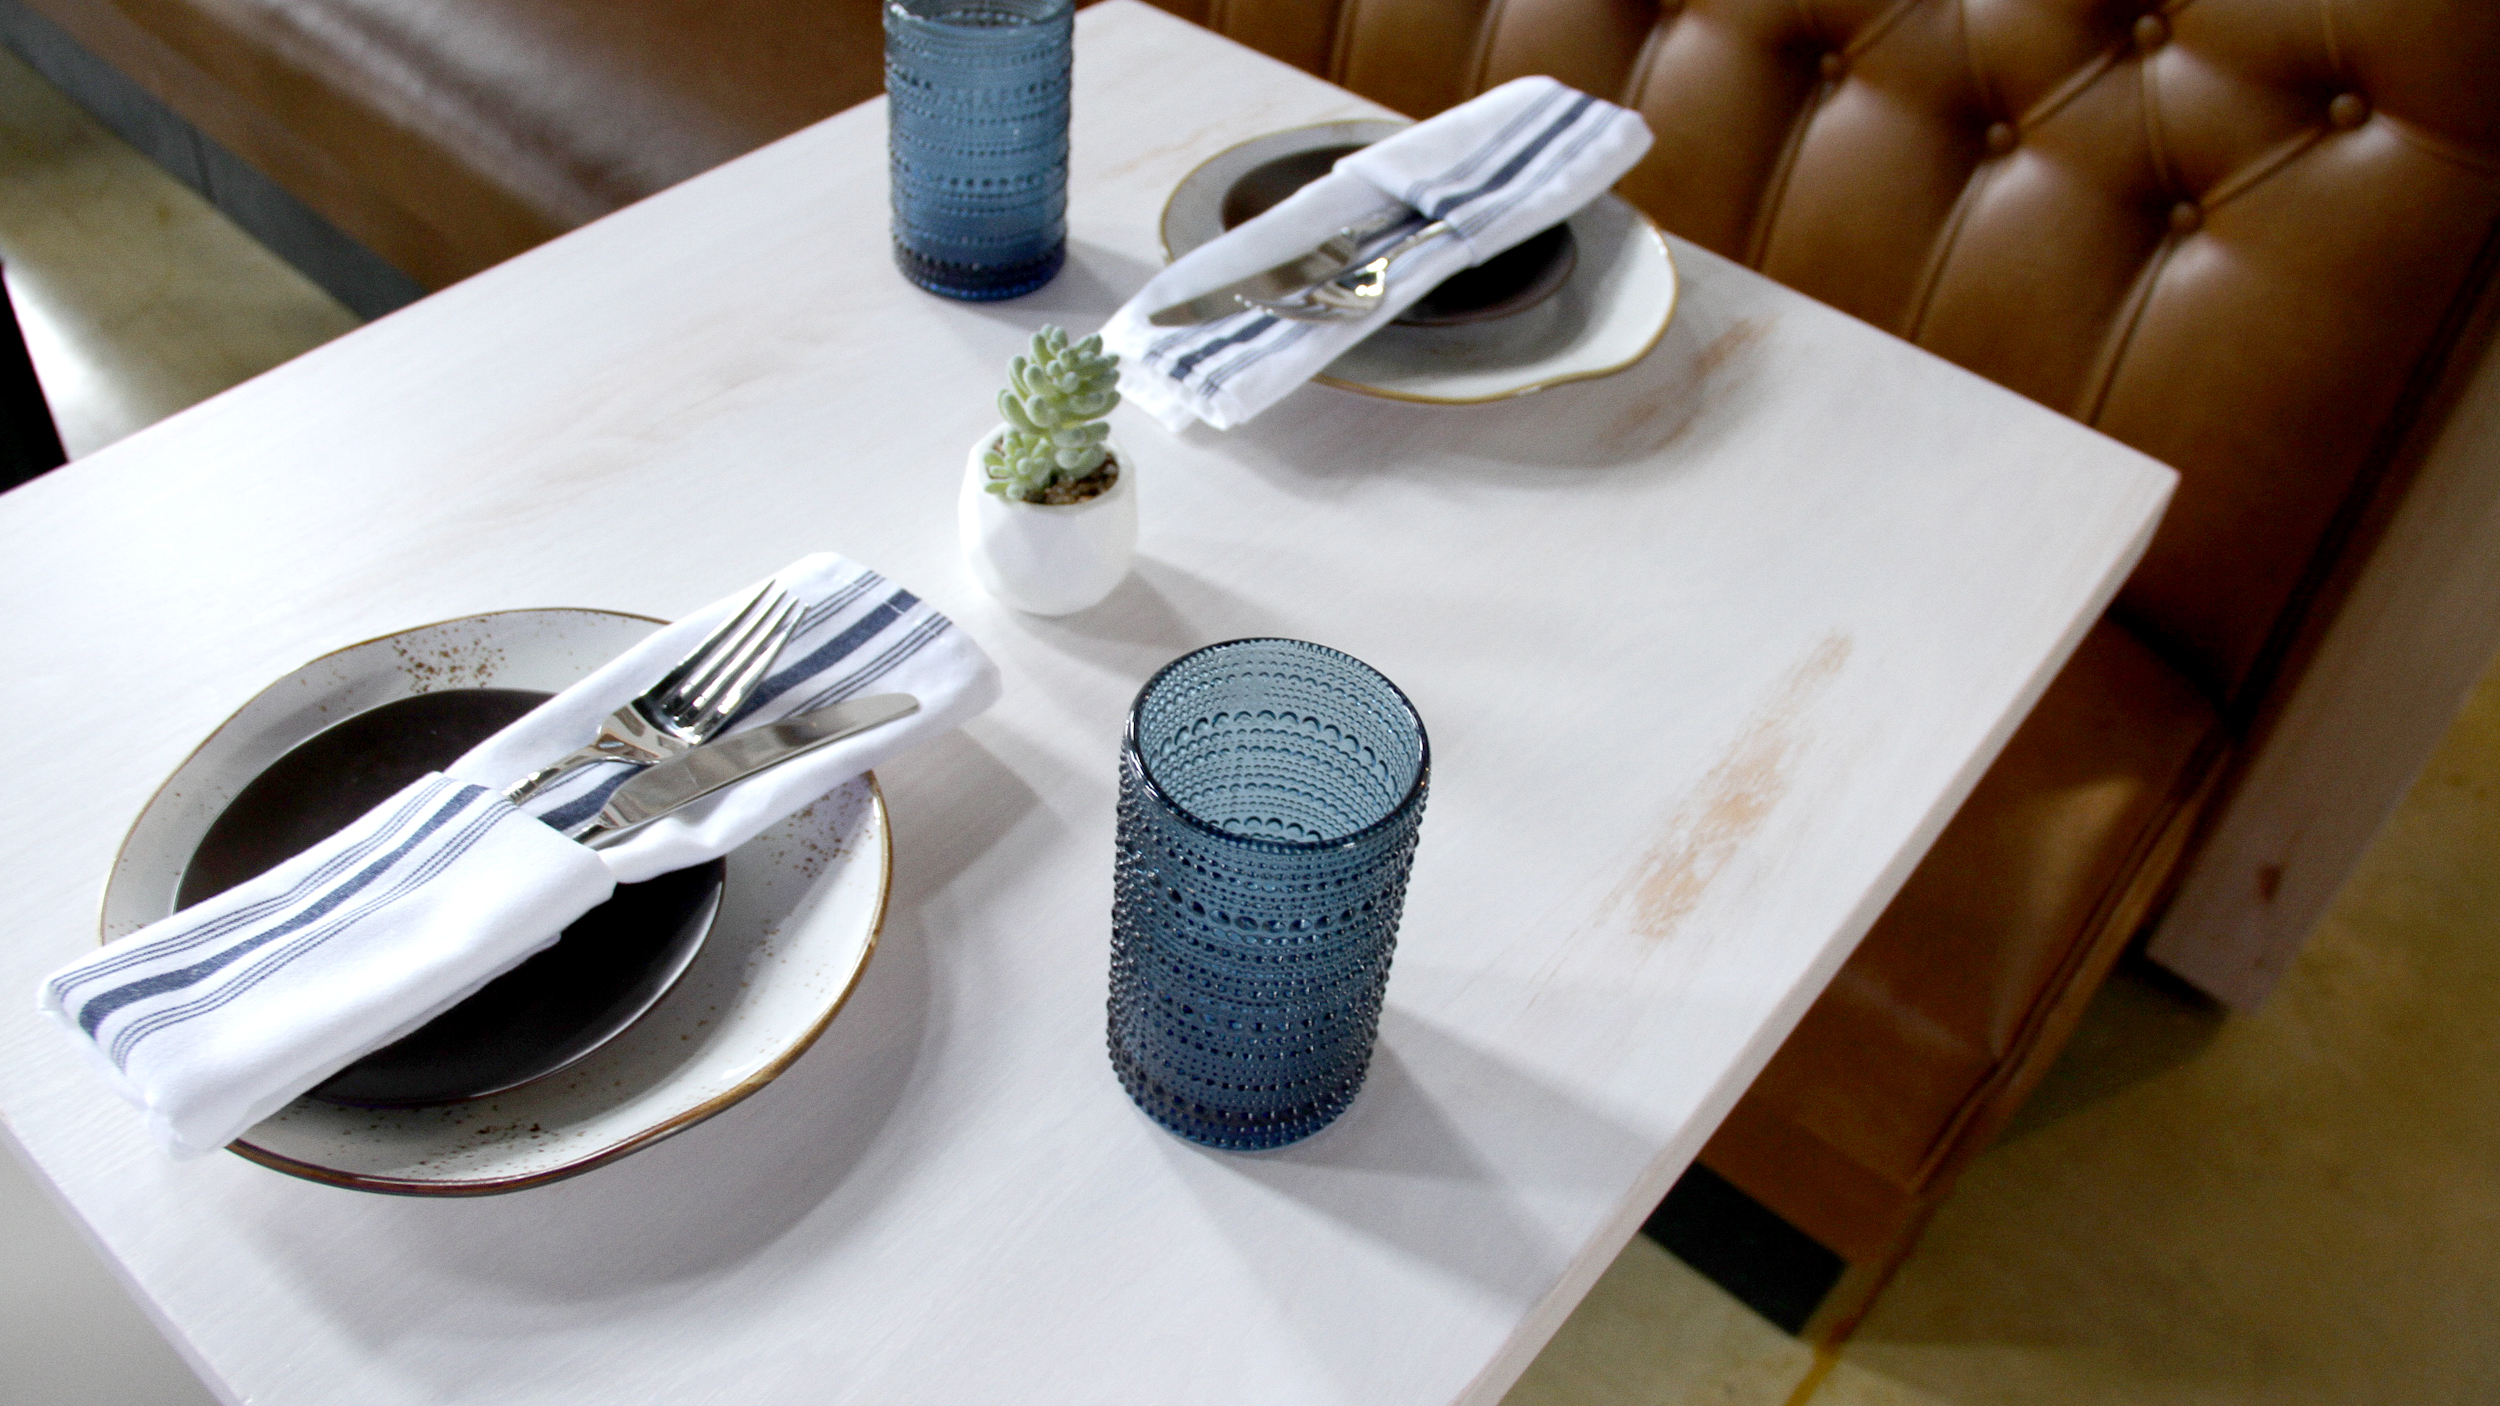 TableSetting_II.jpg